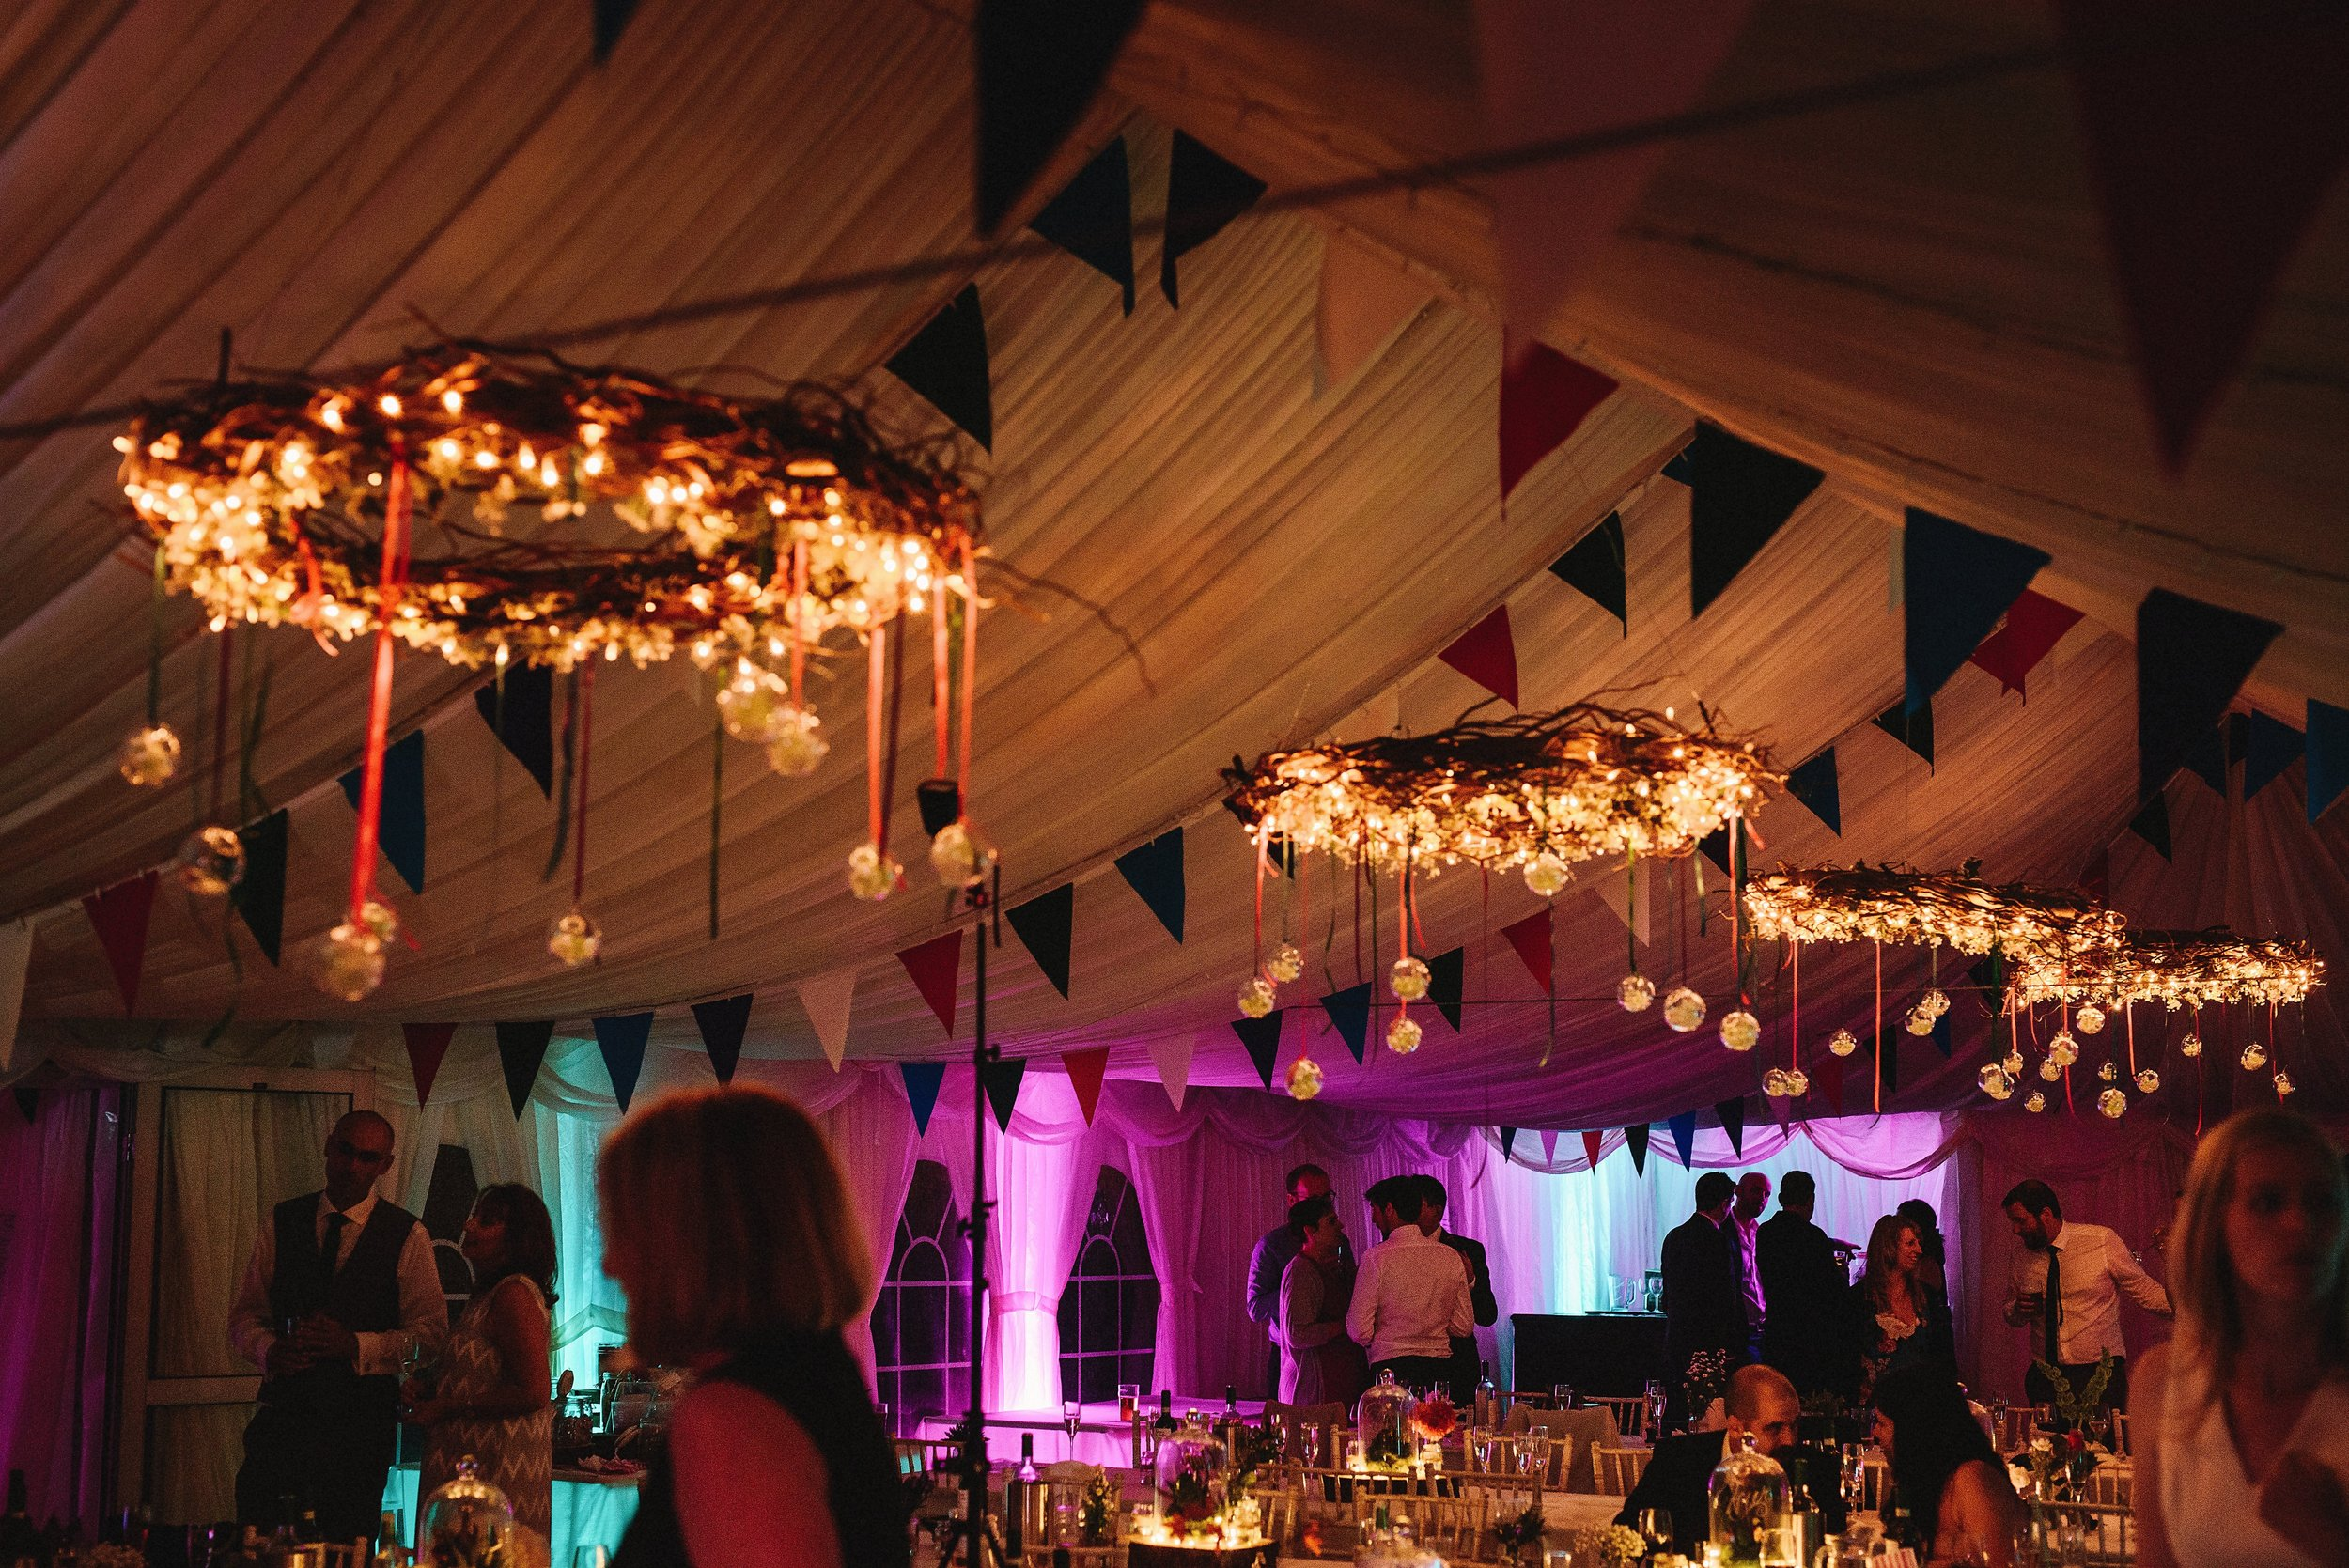 Chandeliers in our wedding marquee at night. Photo by Andy Gaines.  andygaines.com